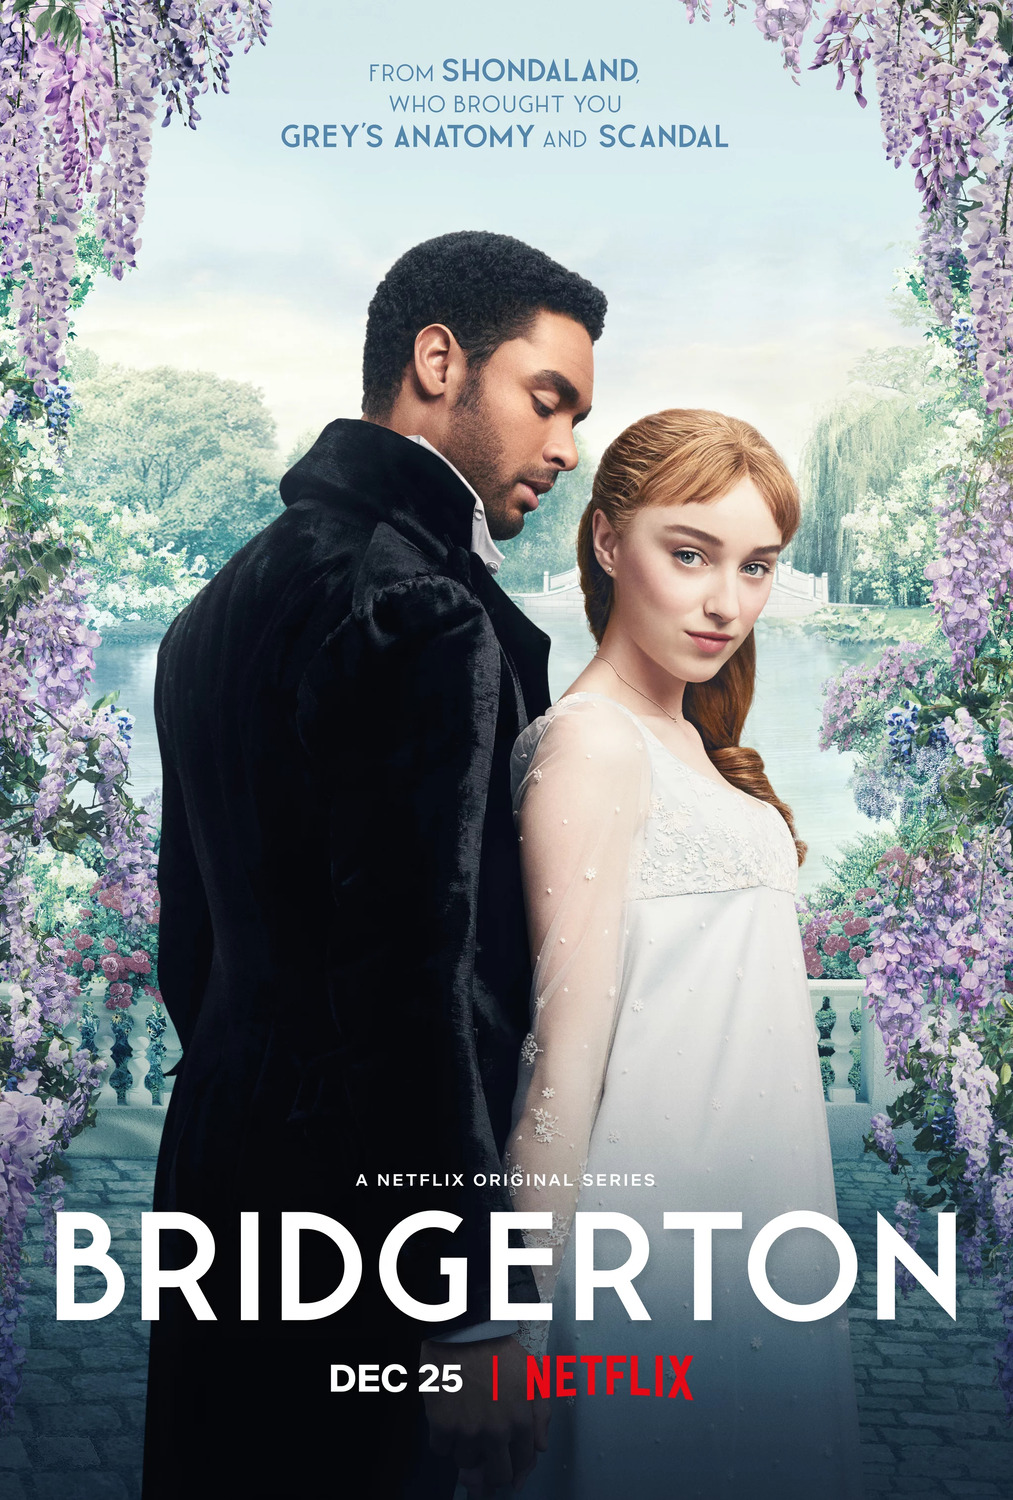 Bridgerton (TV Series 2020– ) - IMDb